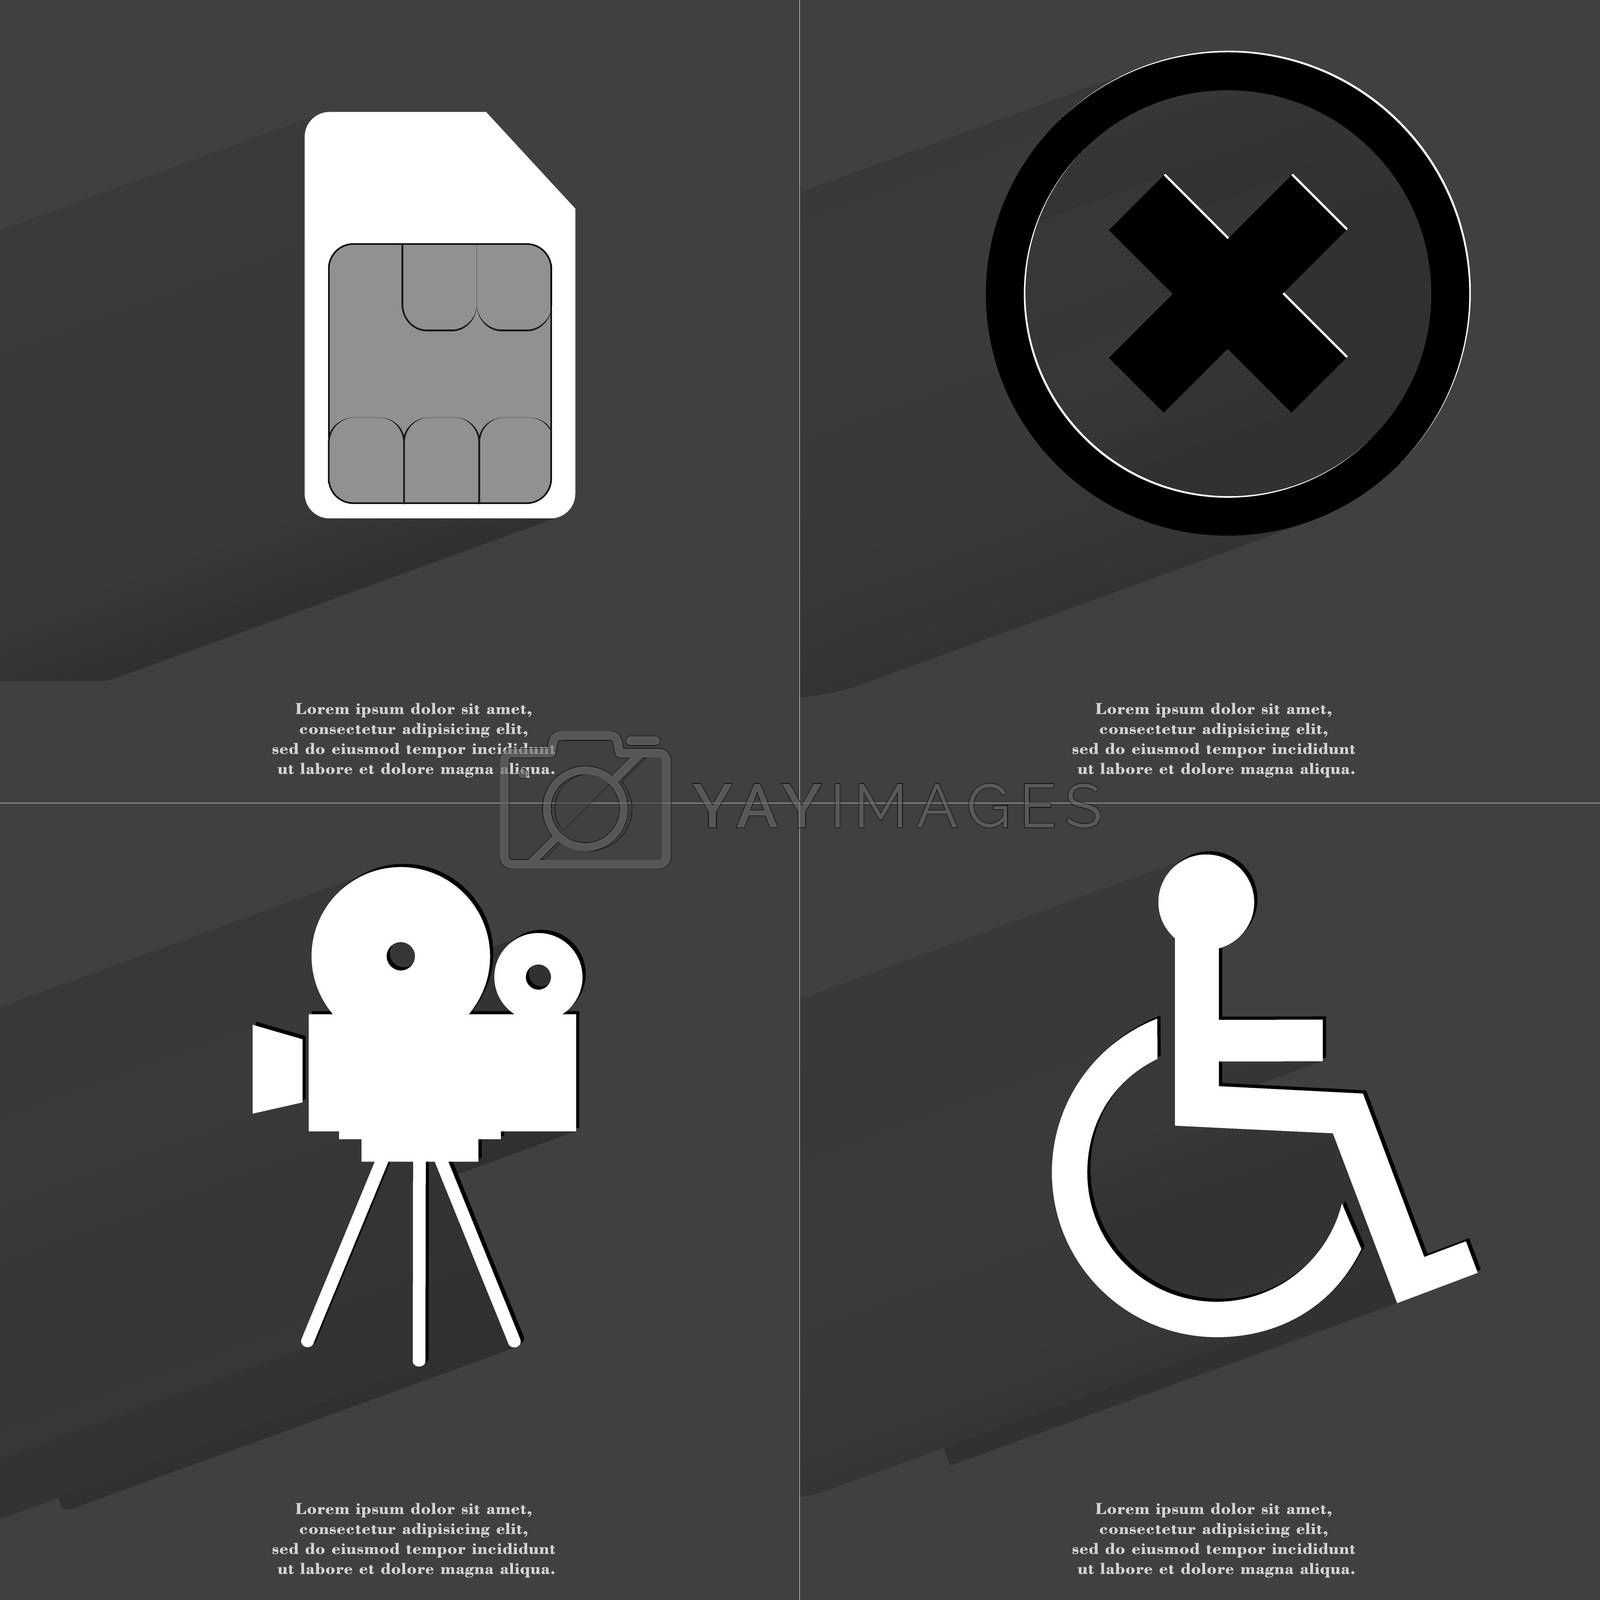 Royalty free image of SIM card, Stop sign, Film camera, Disabled person. Symbols with long shadow. Flat design by serhii_lohvyniuk